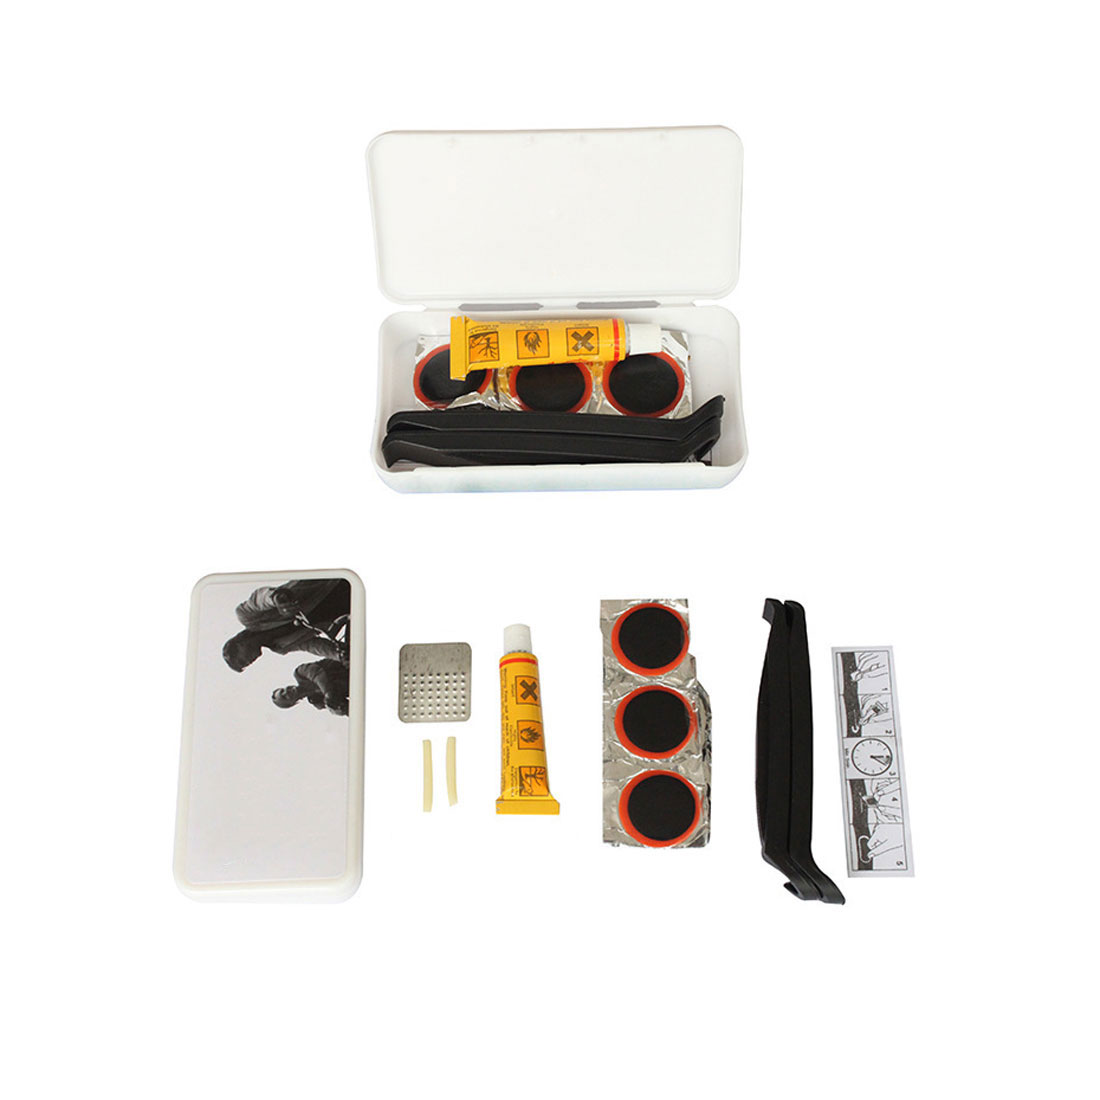 New Arrival 1 Set MTB Mountain Bike Cycling Bicycle Tyre Glue Outfit Patch Lever Puncture Repair Kit Rubber Tools